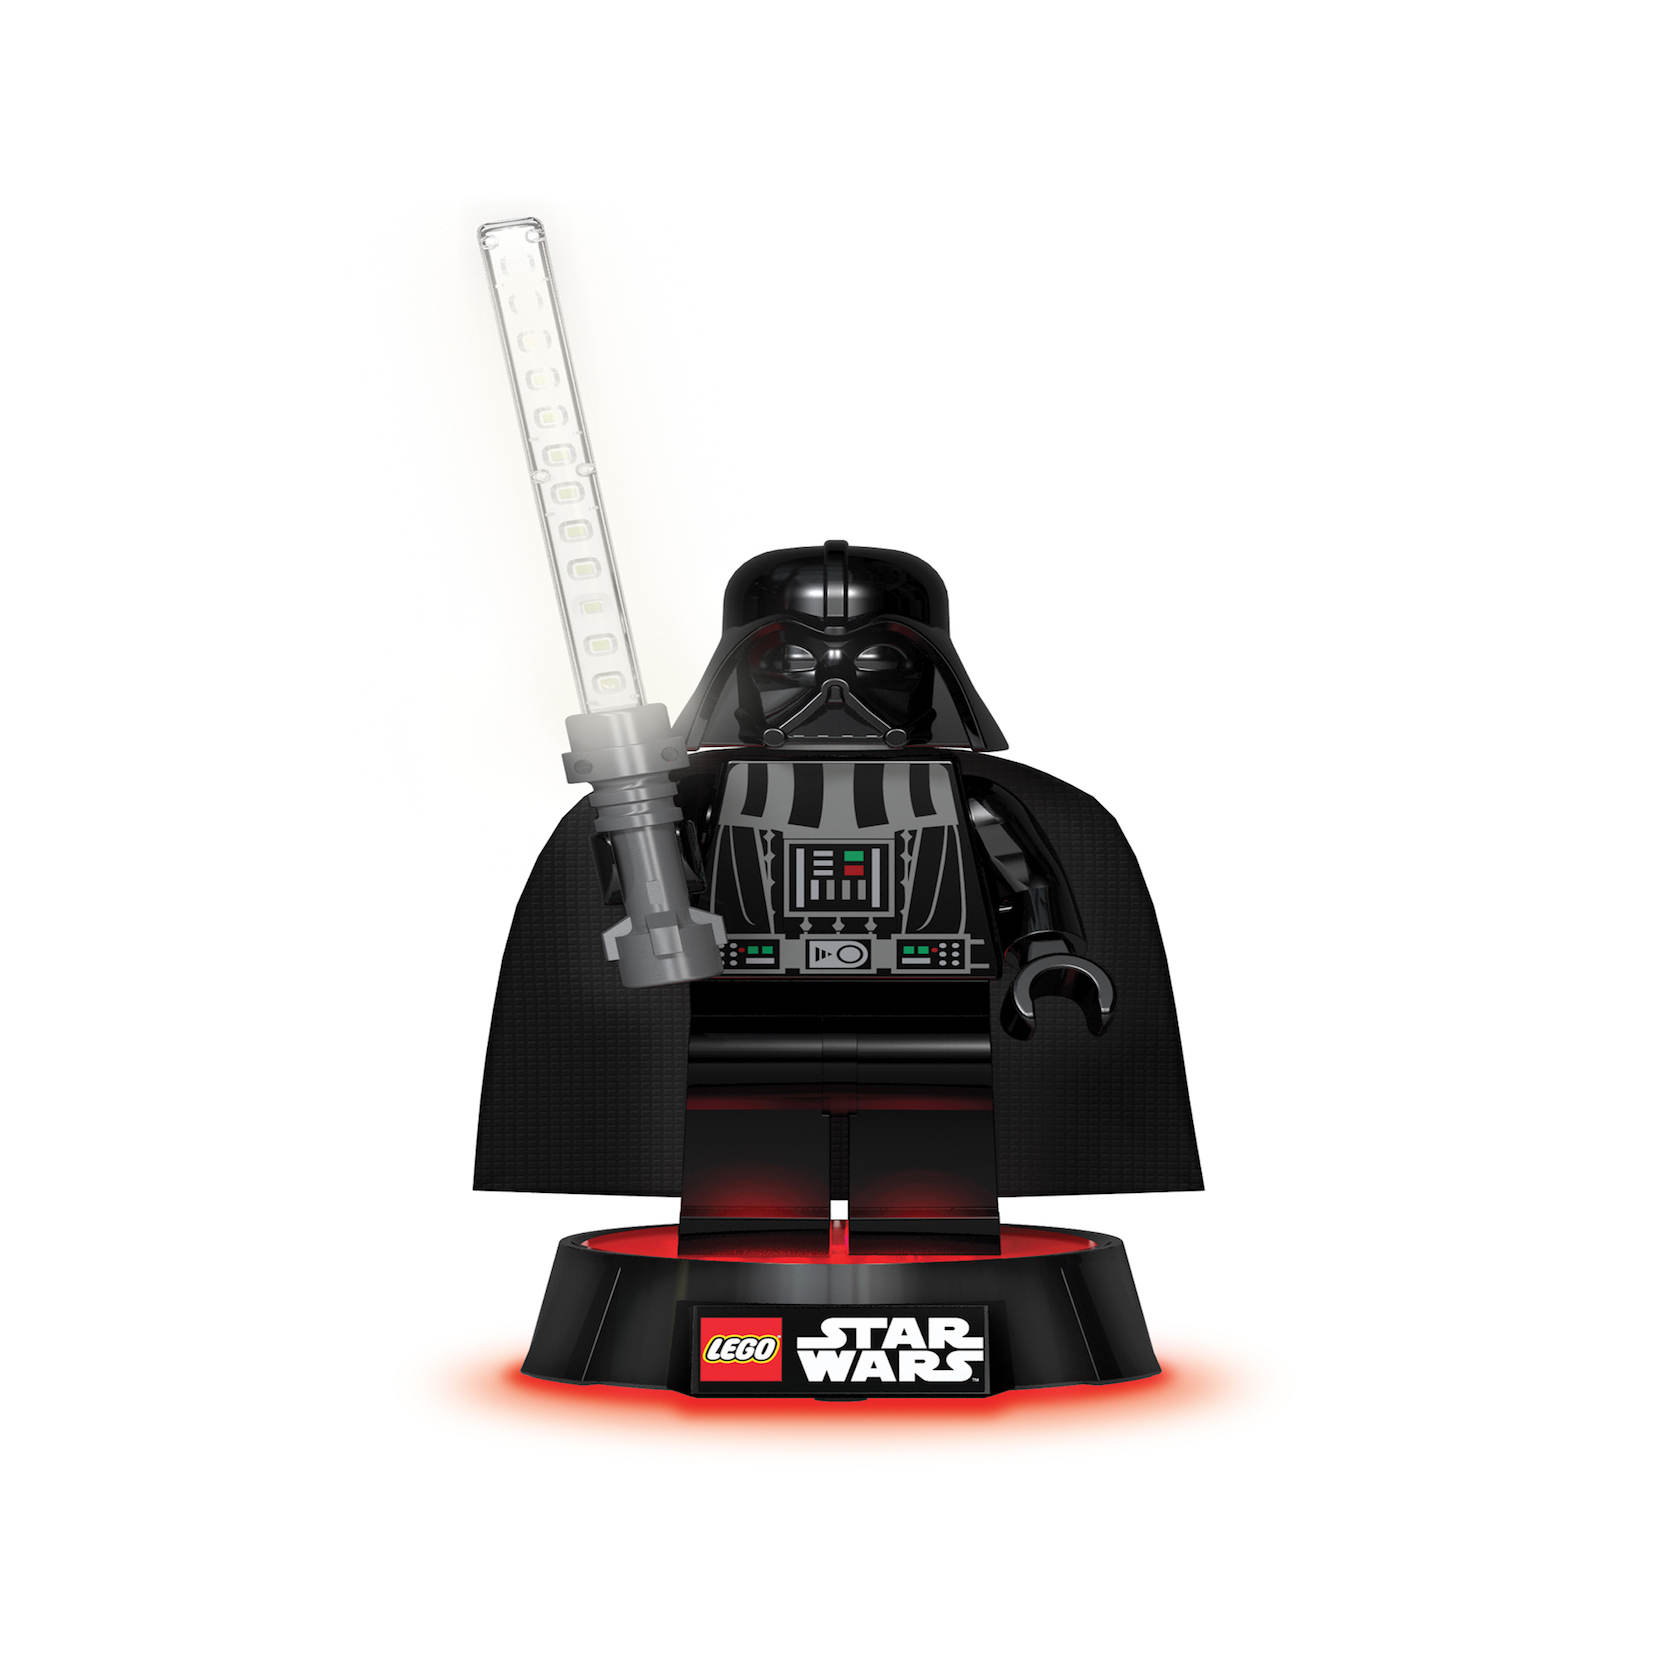 TLJ (ANH) Darth Vader Lego Desk Lamp 2